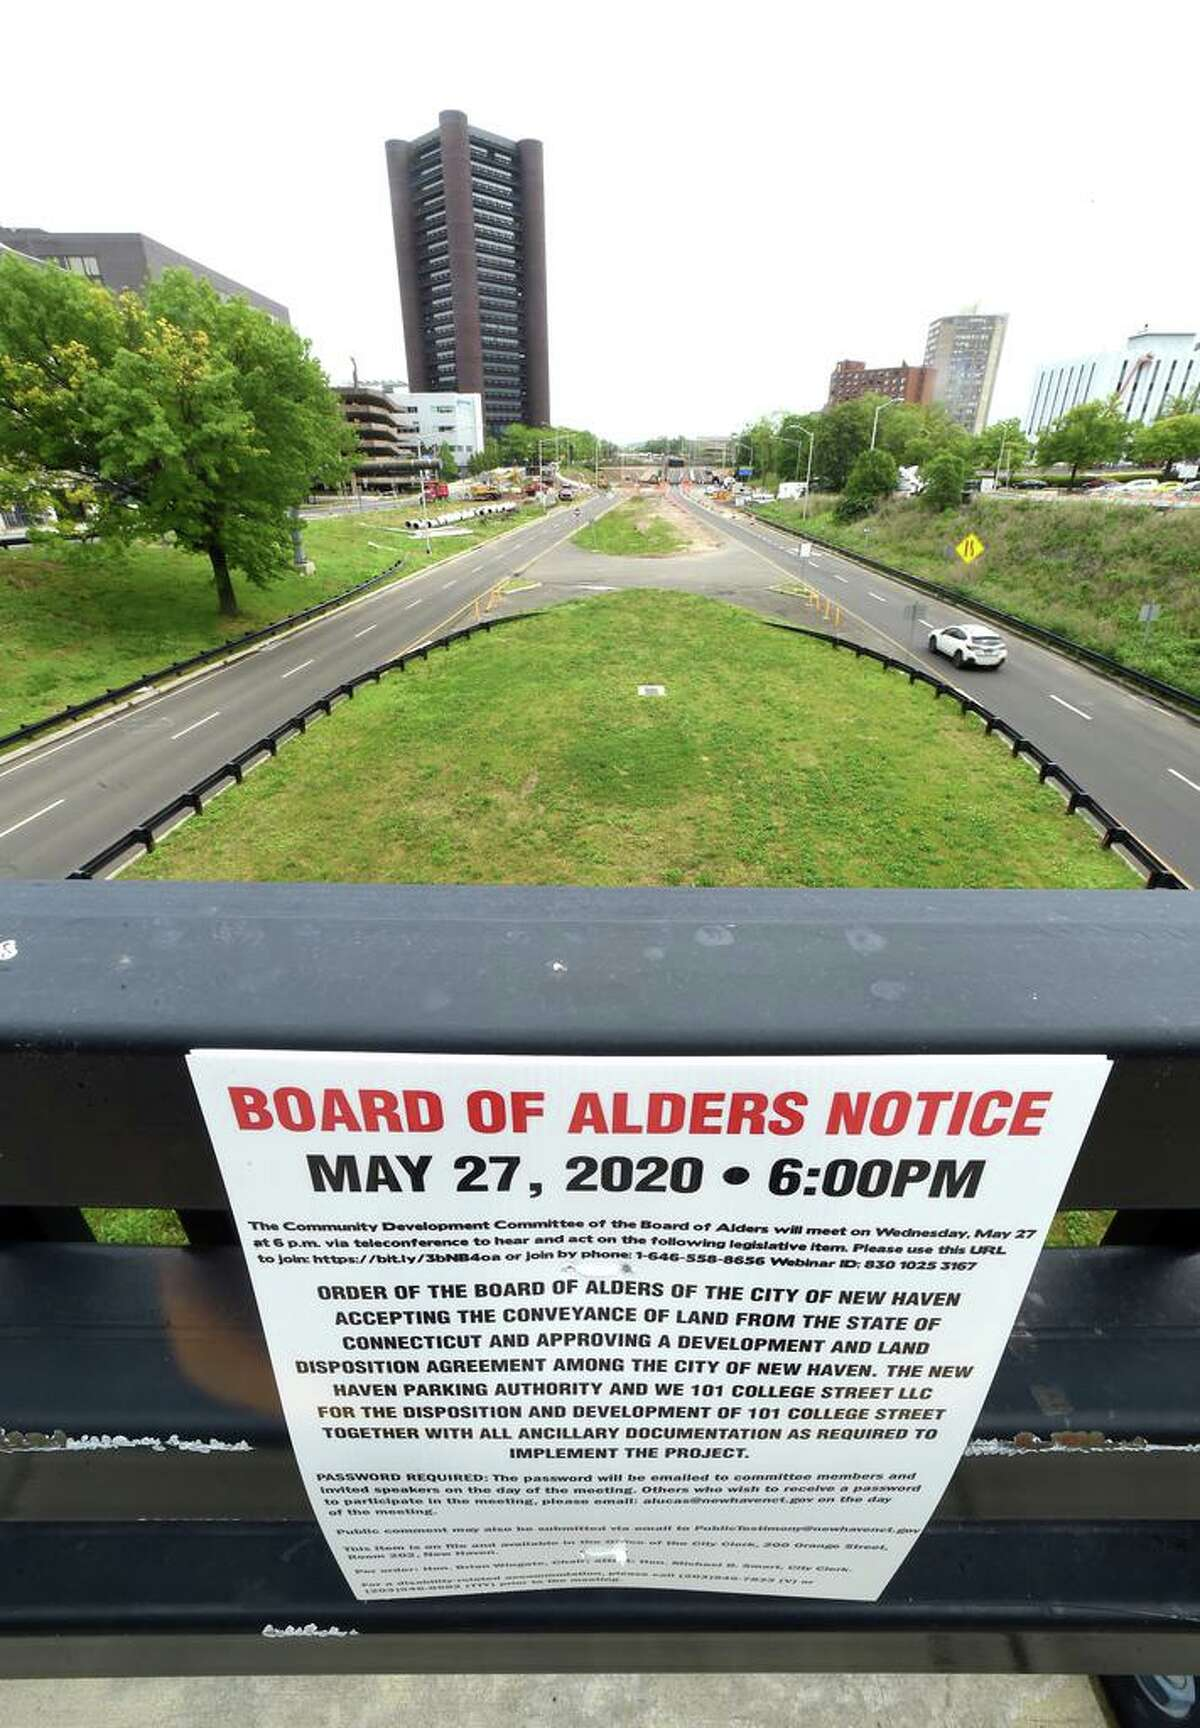 A New Haven Board of Alders notice hangs on a railing at 101 College Street in New Haven on May 28, 2020 detailing a conveyance of land from the state at this location and approval of development and land disposition agreement.